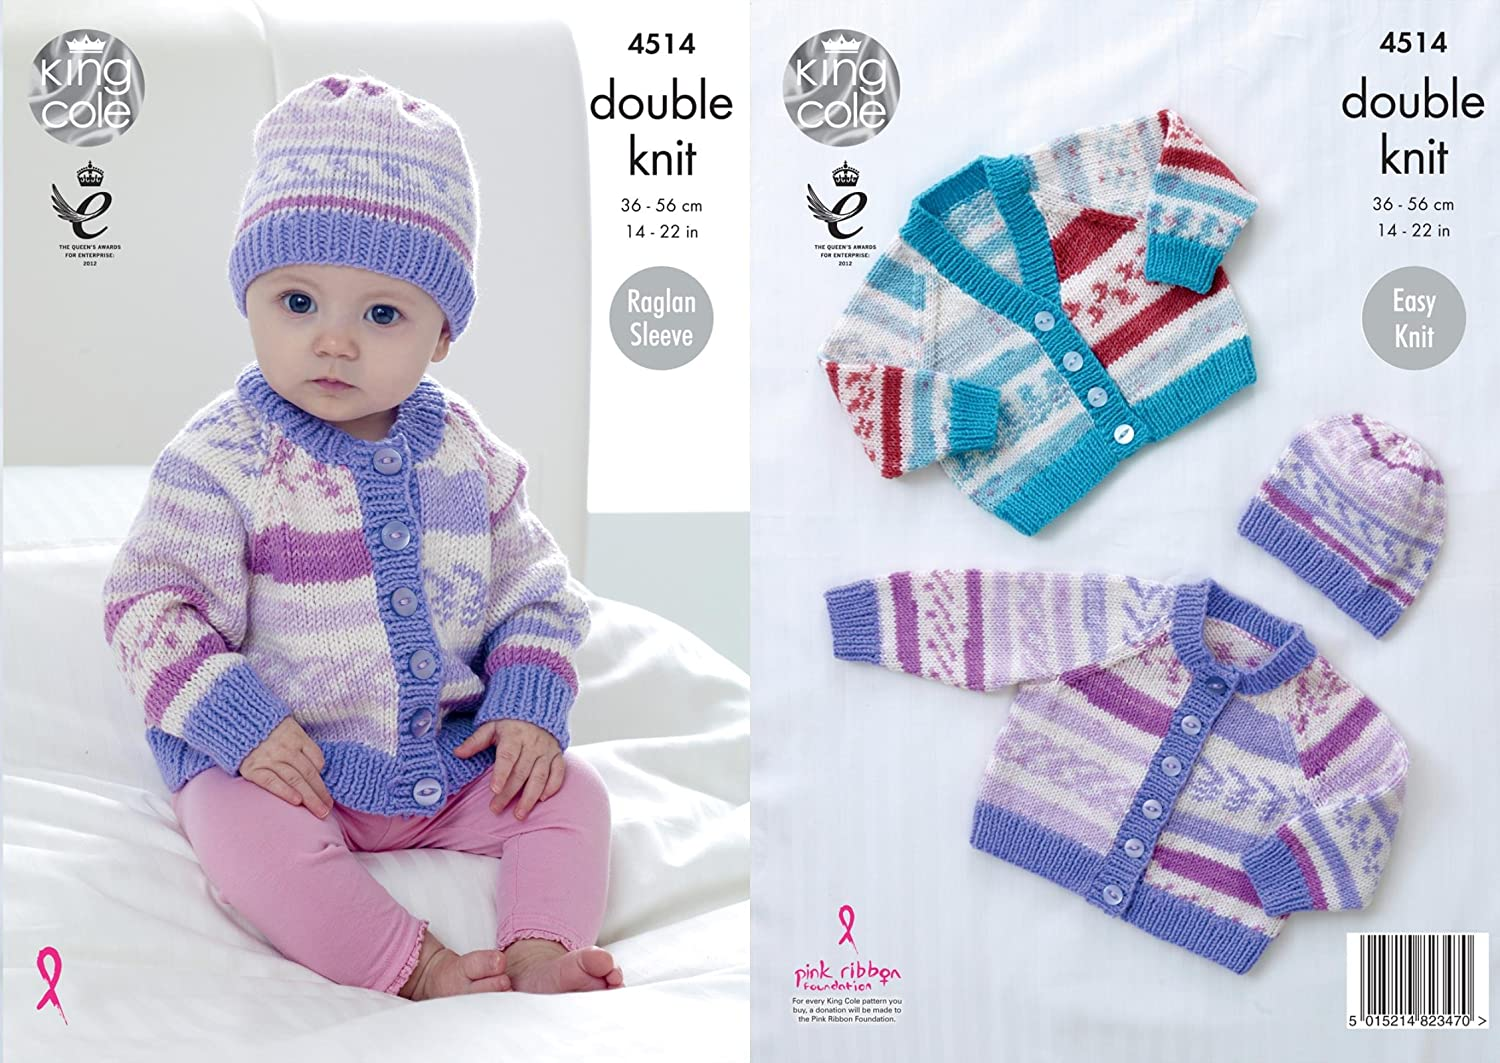 4d706aef049b King Cole 4514 Knitting Pattern Baby Cardigans and Hat to knit in ...